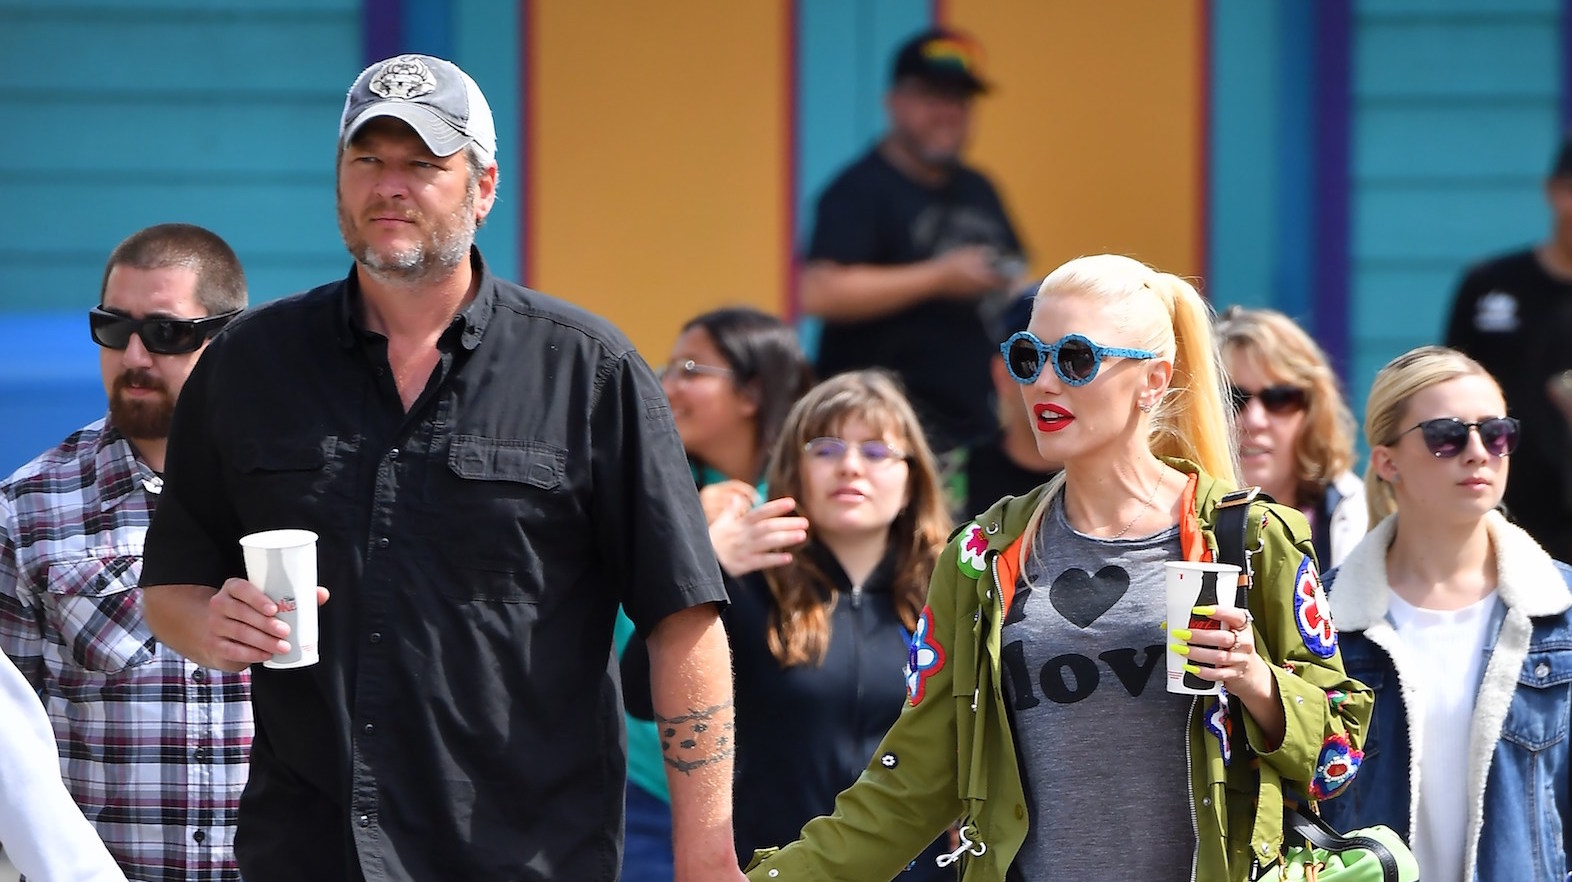 So Cute! Blake Shelton and Gwen Stefani Pack on the PDA During Family Outing in California